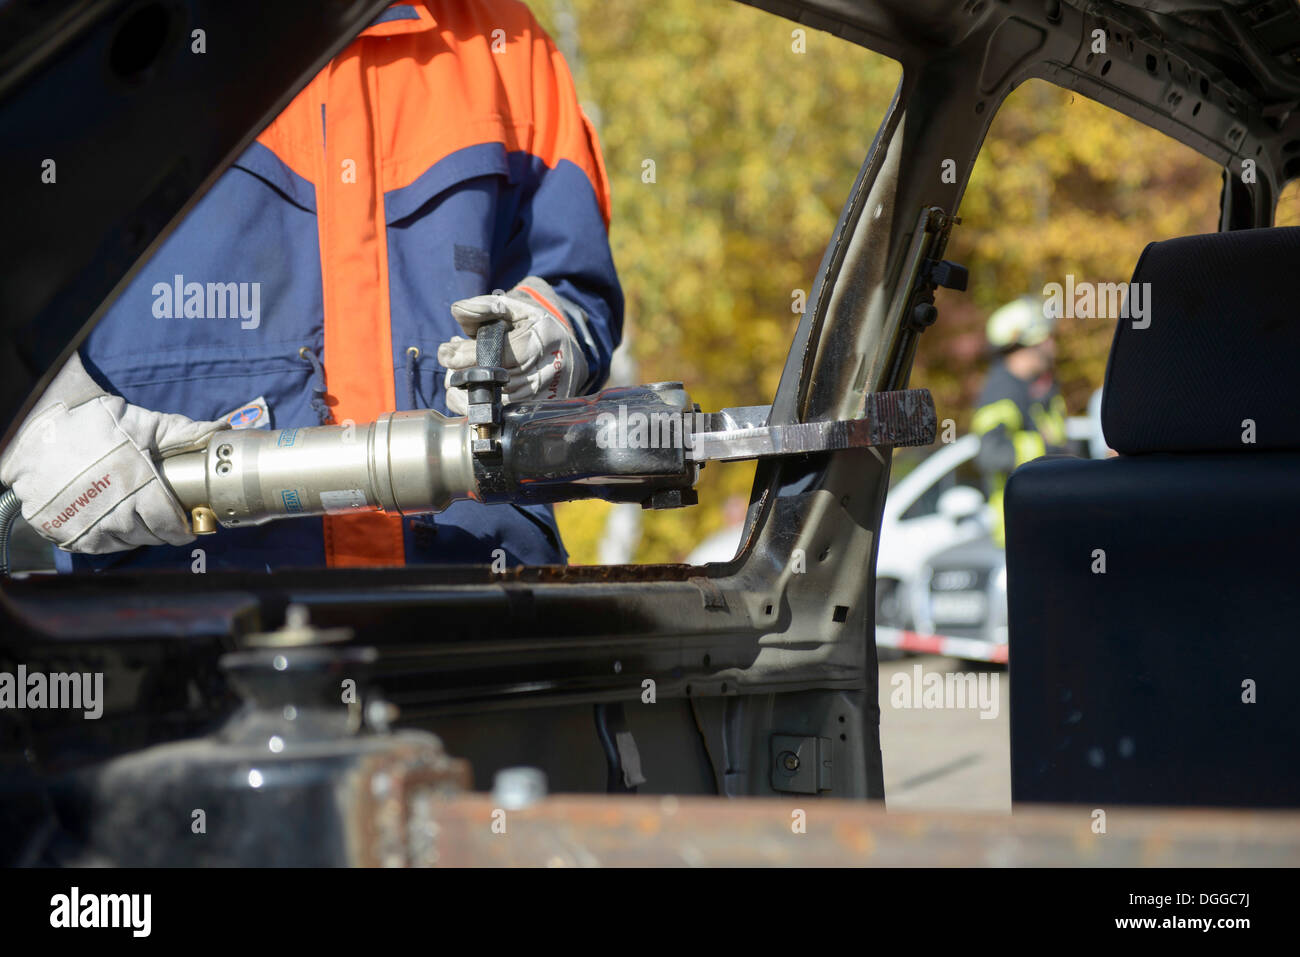 Firefighter working with hydraulic rescue equipment, final fire service drill of the young Stuttgart firefighters - Stock Image